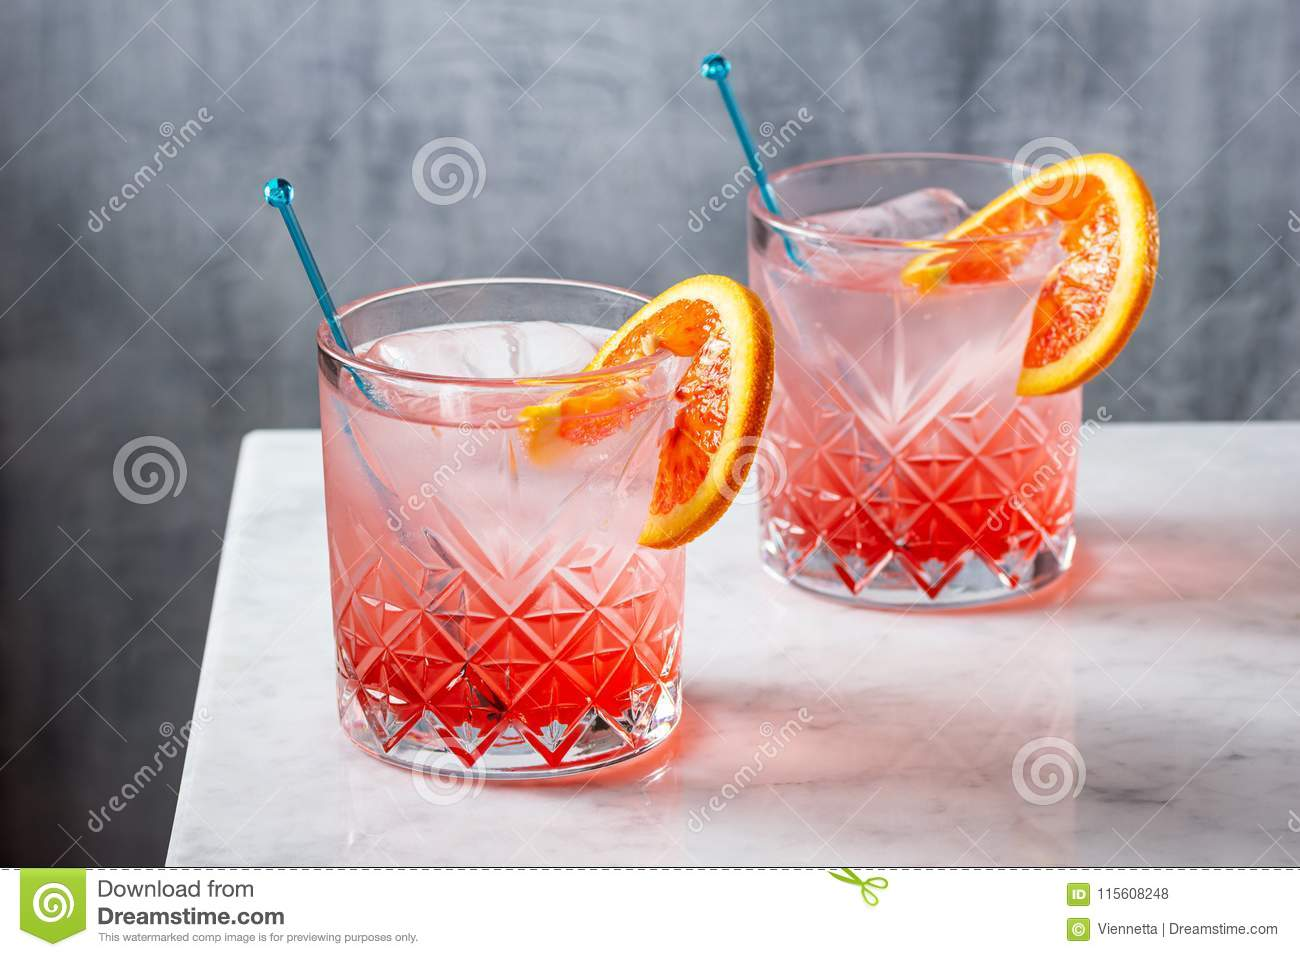 Two Blood Orange Gin and Tonic Cocktails on Counter